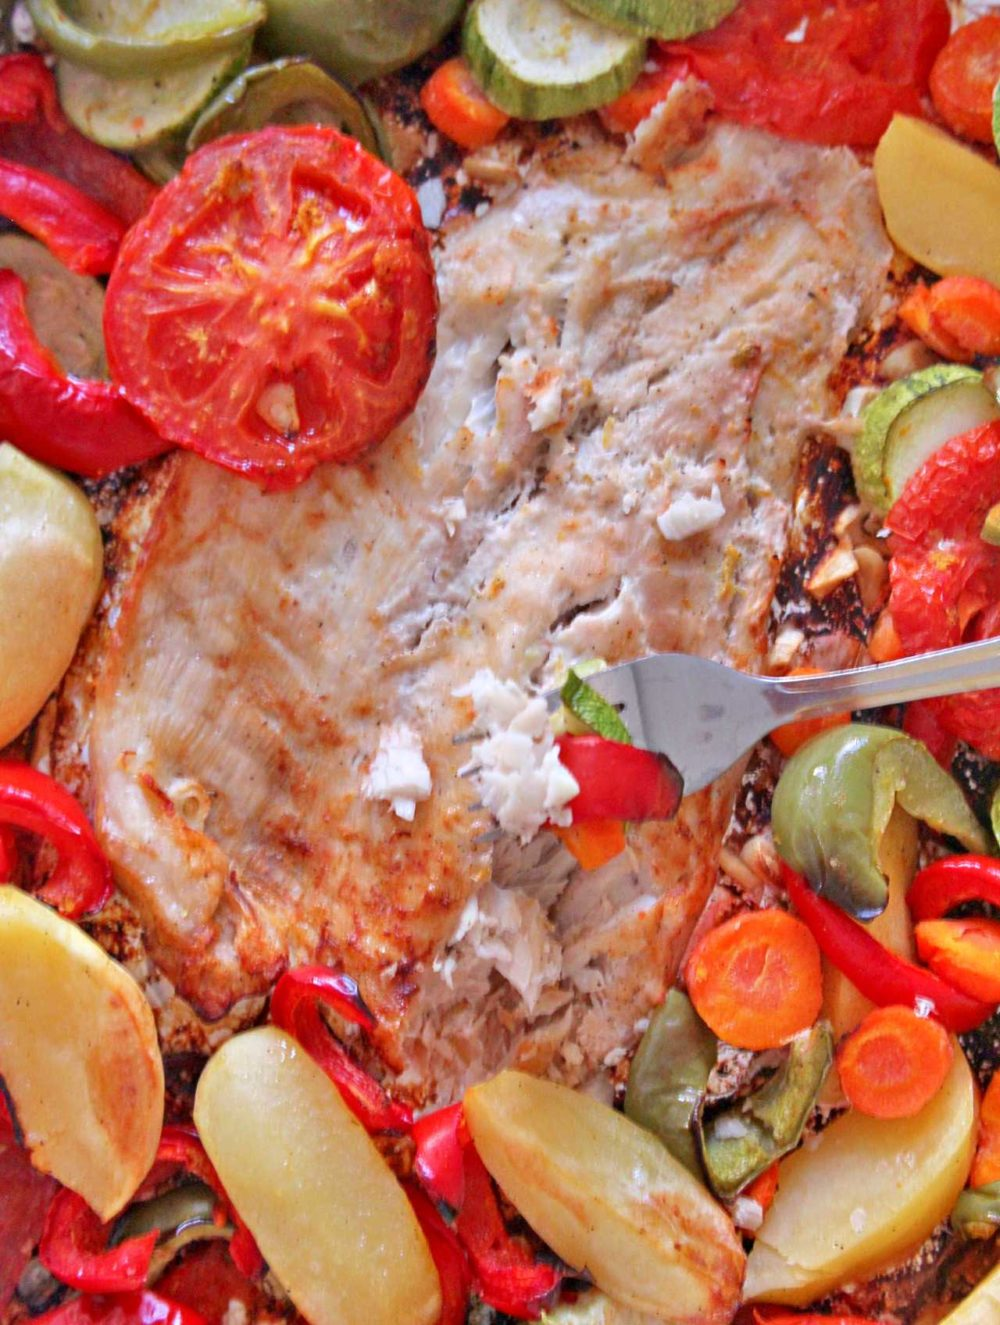 baked fish with vegetables